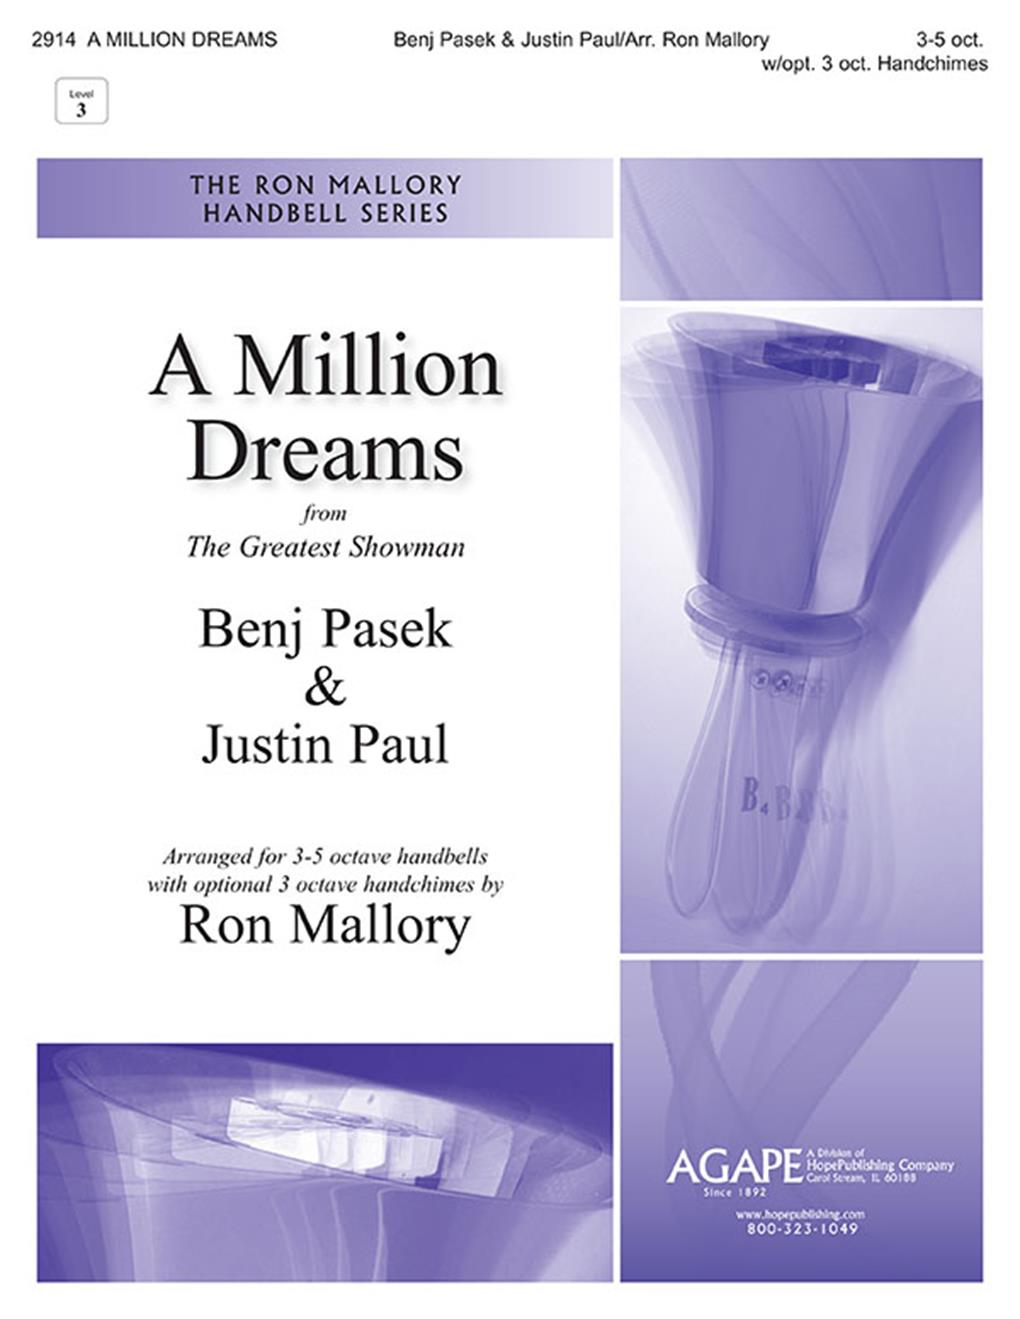 A Million Dreams - 3-5 Oct. Cover Image